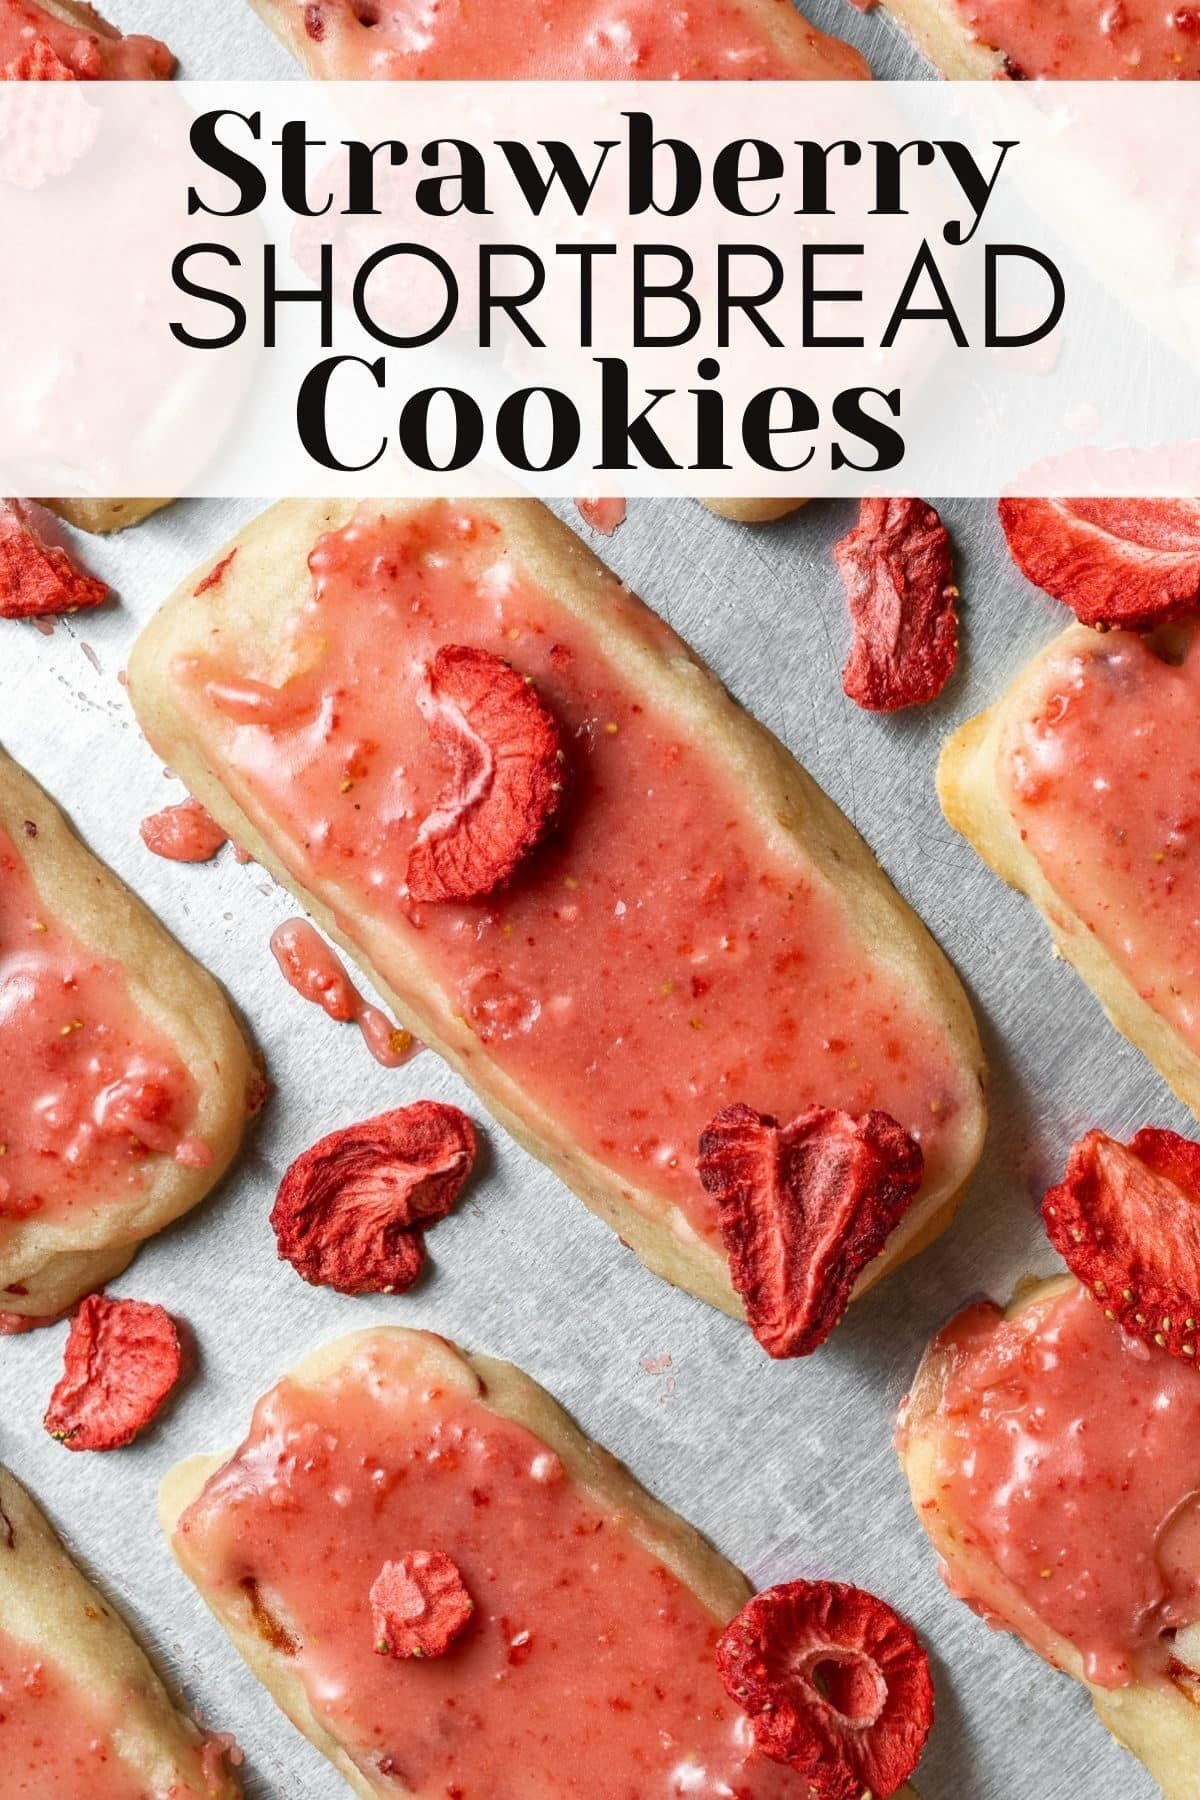 strawberry shortbread cookies on a baking tray with freeze dried strawberries round them and text overlay